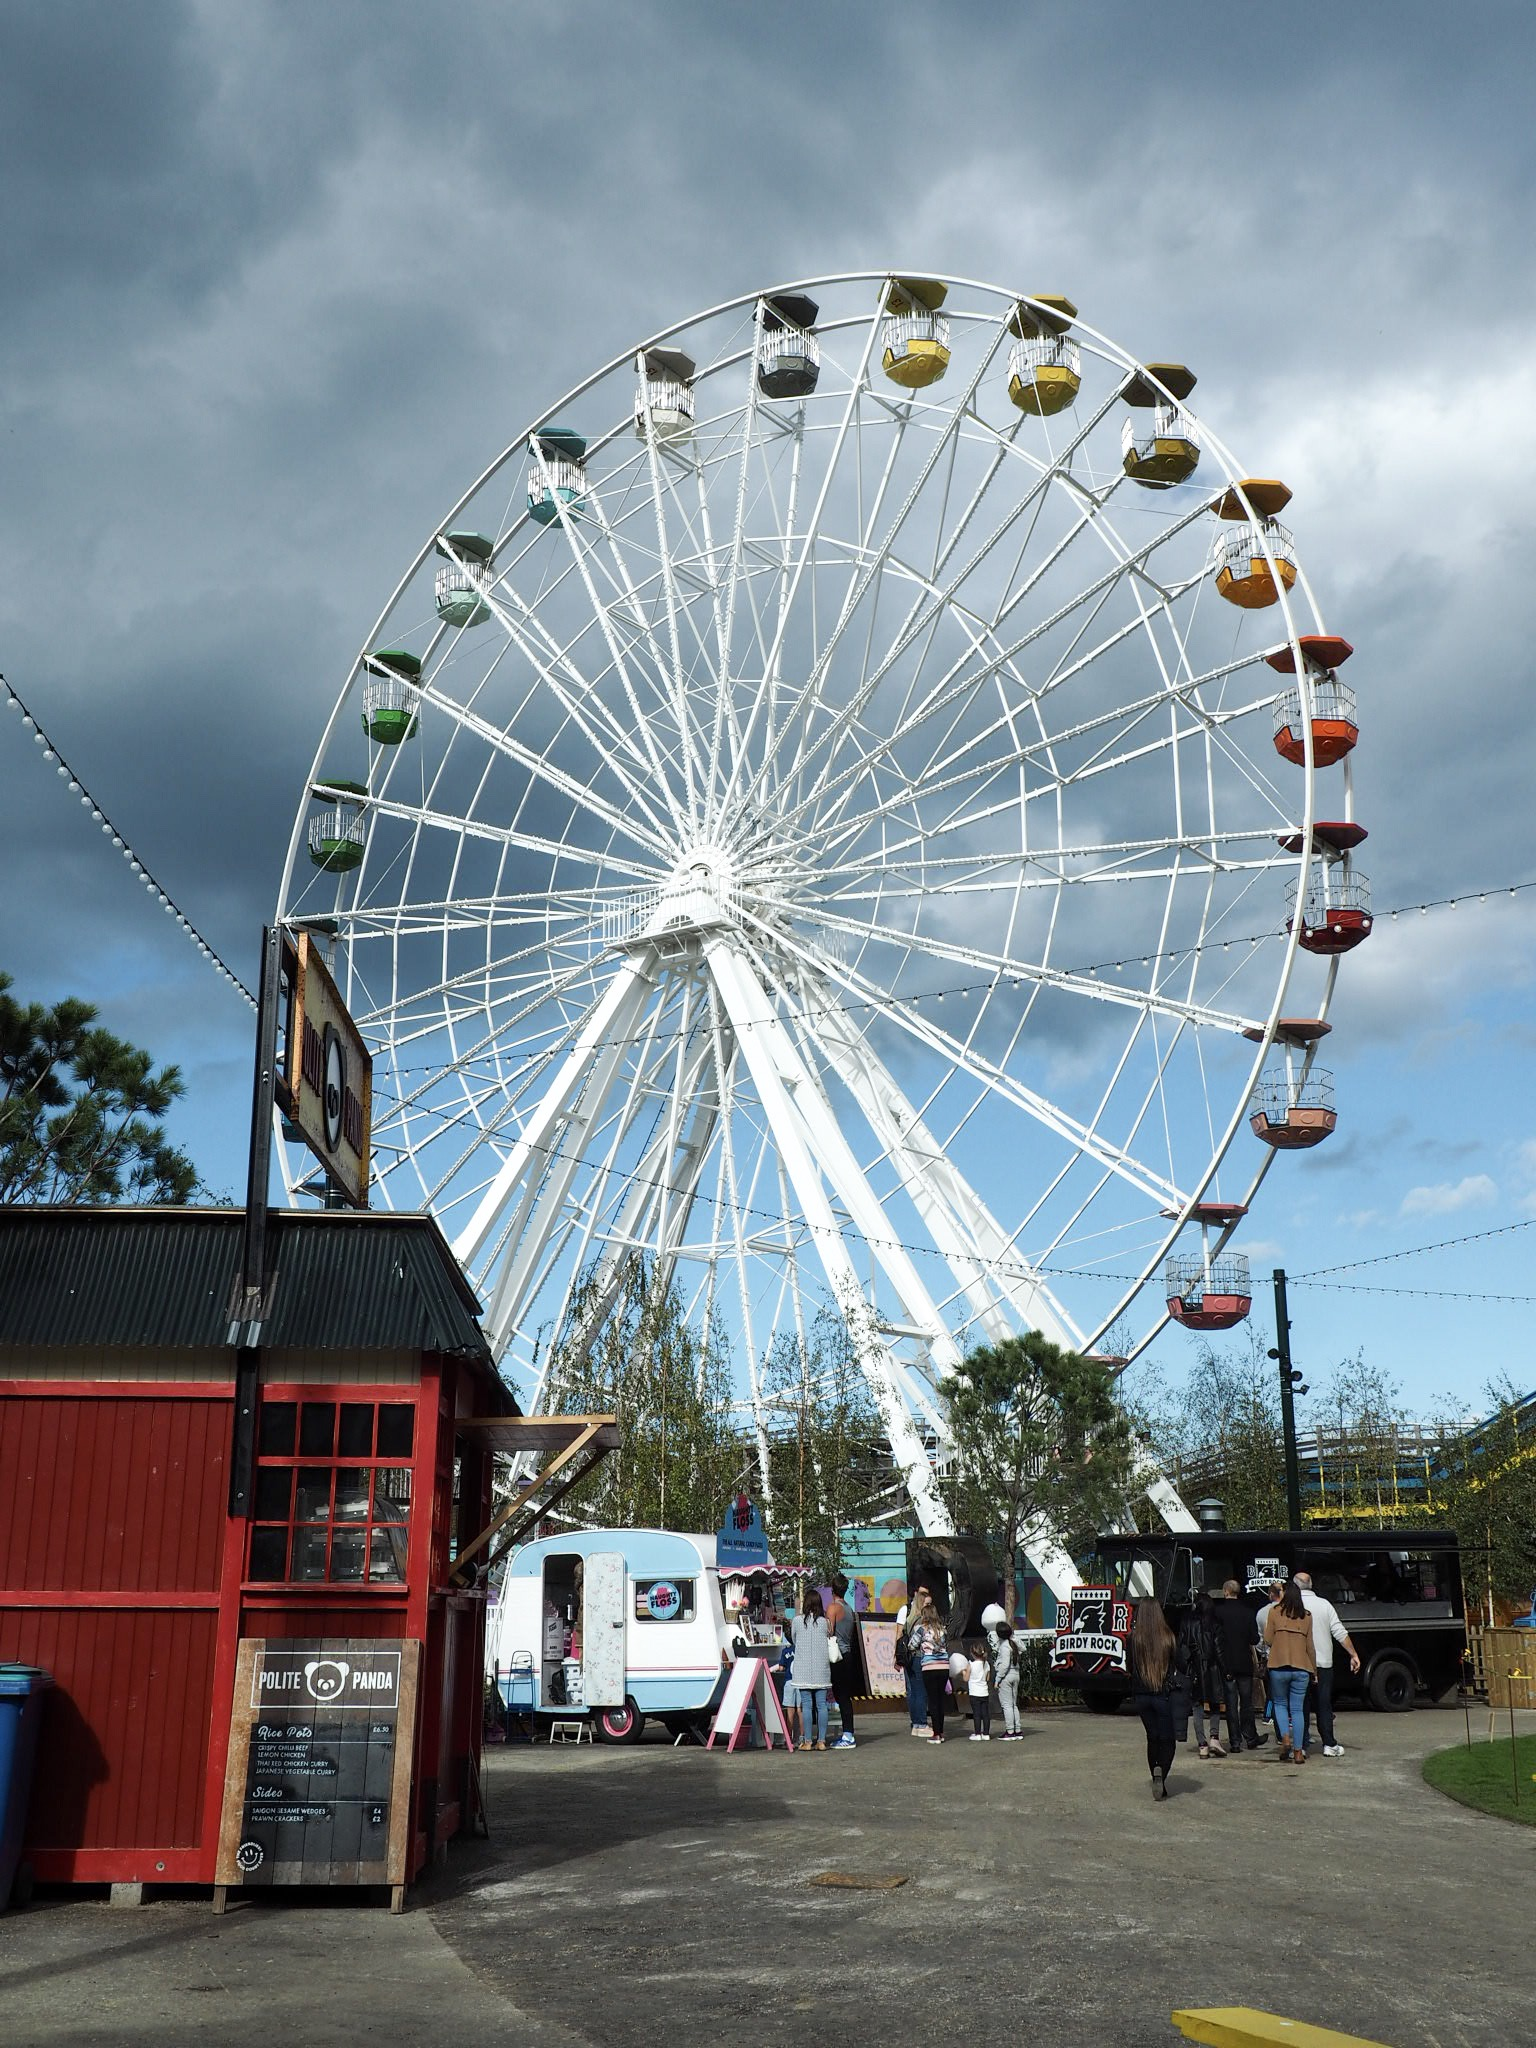 Big wheel at Dreamland